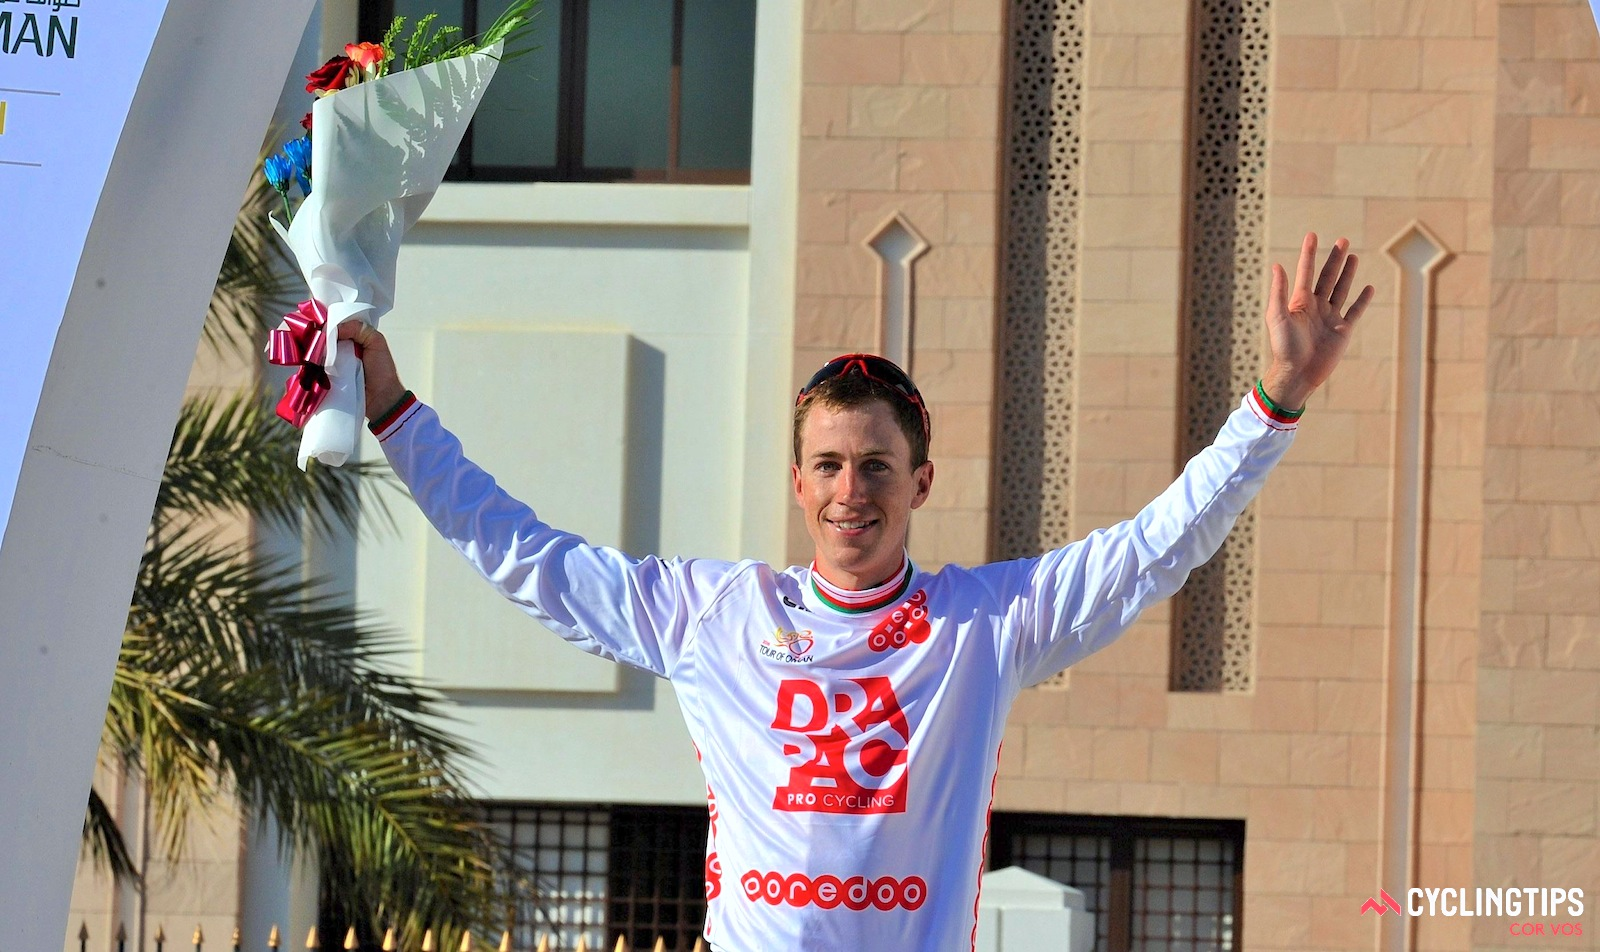 Brendan Canty after winning the best young rider jersey at the 2016 Tour of Oman.